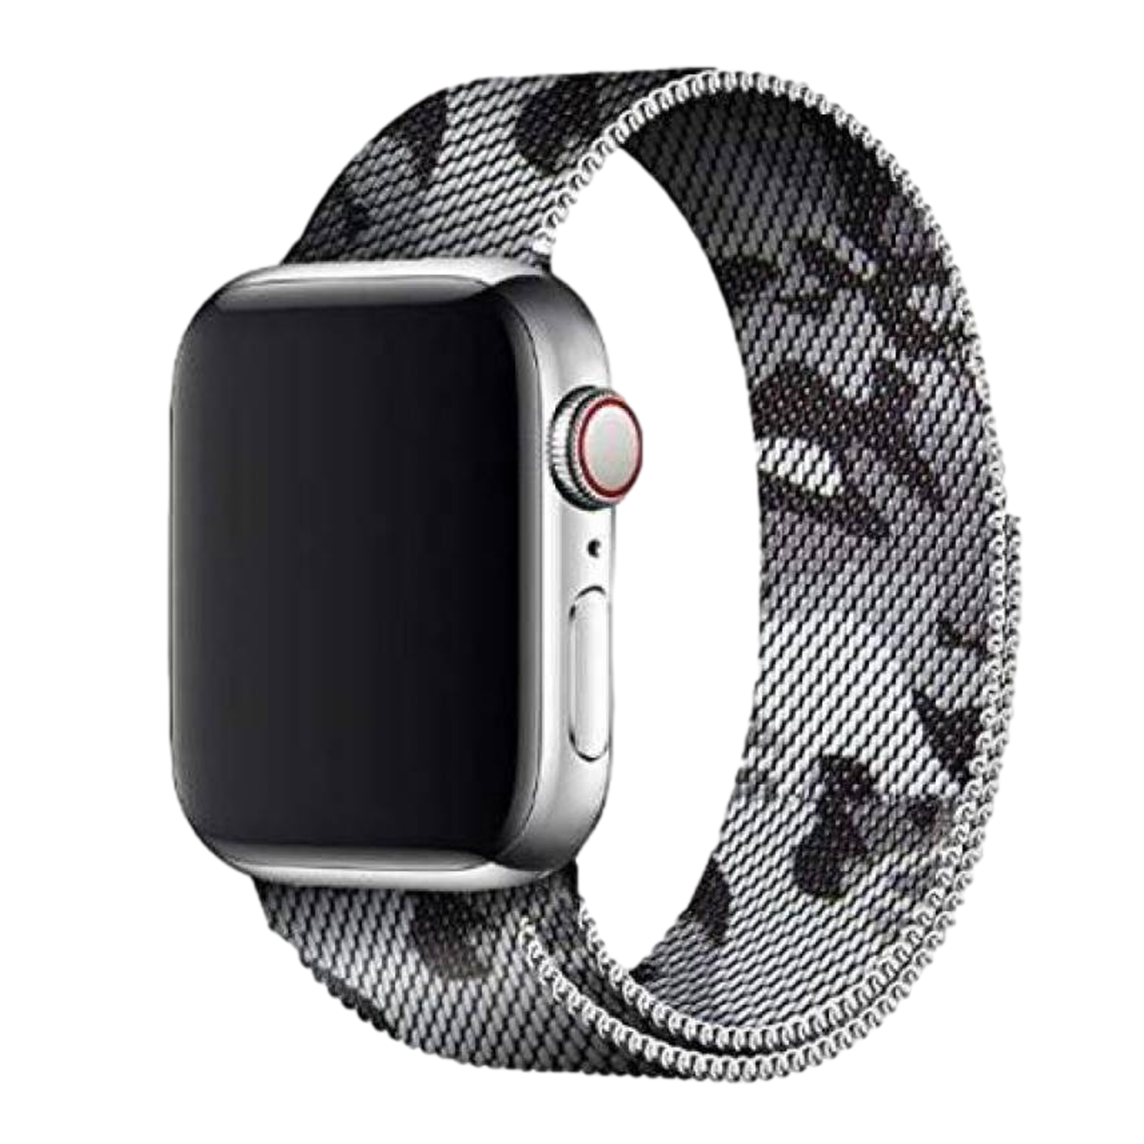 Stainless Steel Strap Band with Magnetic Closure for Apple Watch 42mm / 44mm - Grey